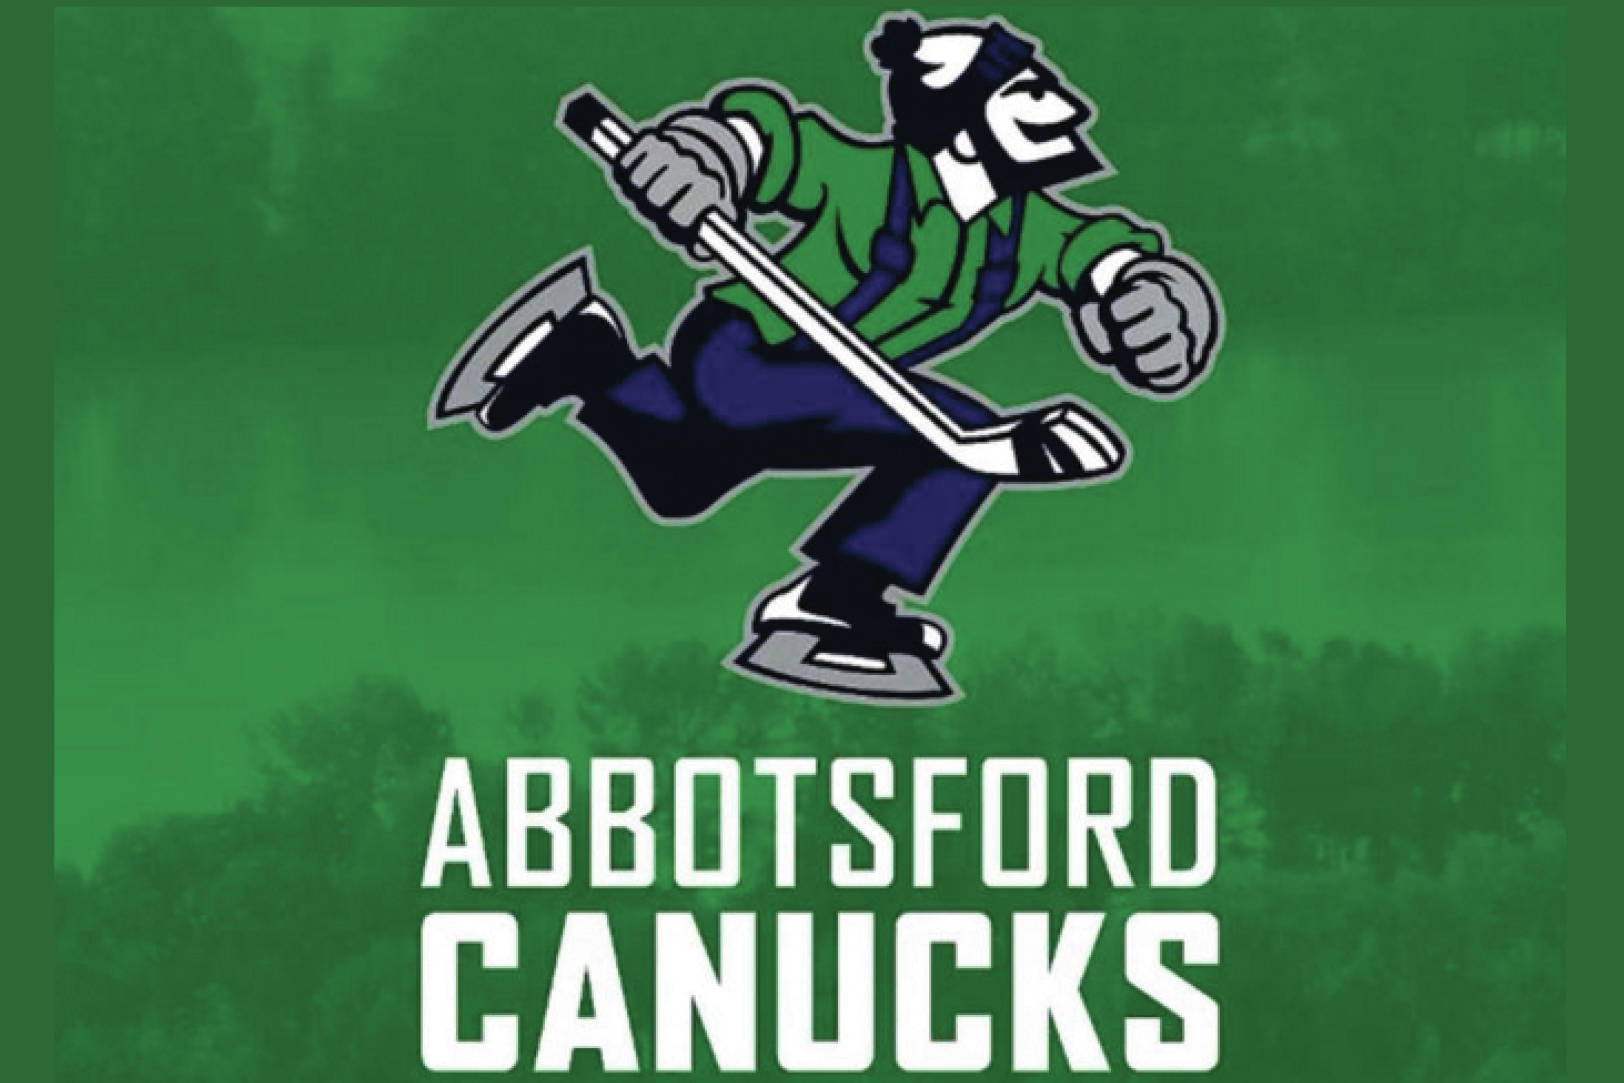 The Abbotsford Canucks are going with Johnny Canuck as the team's primary logo.